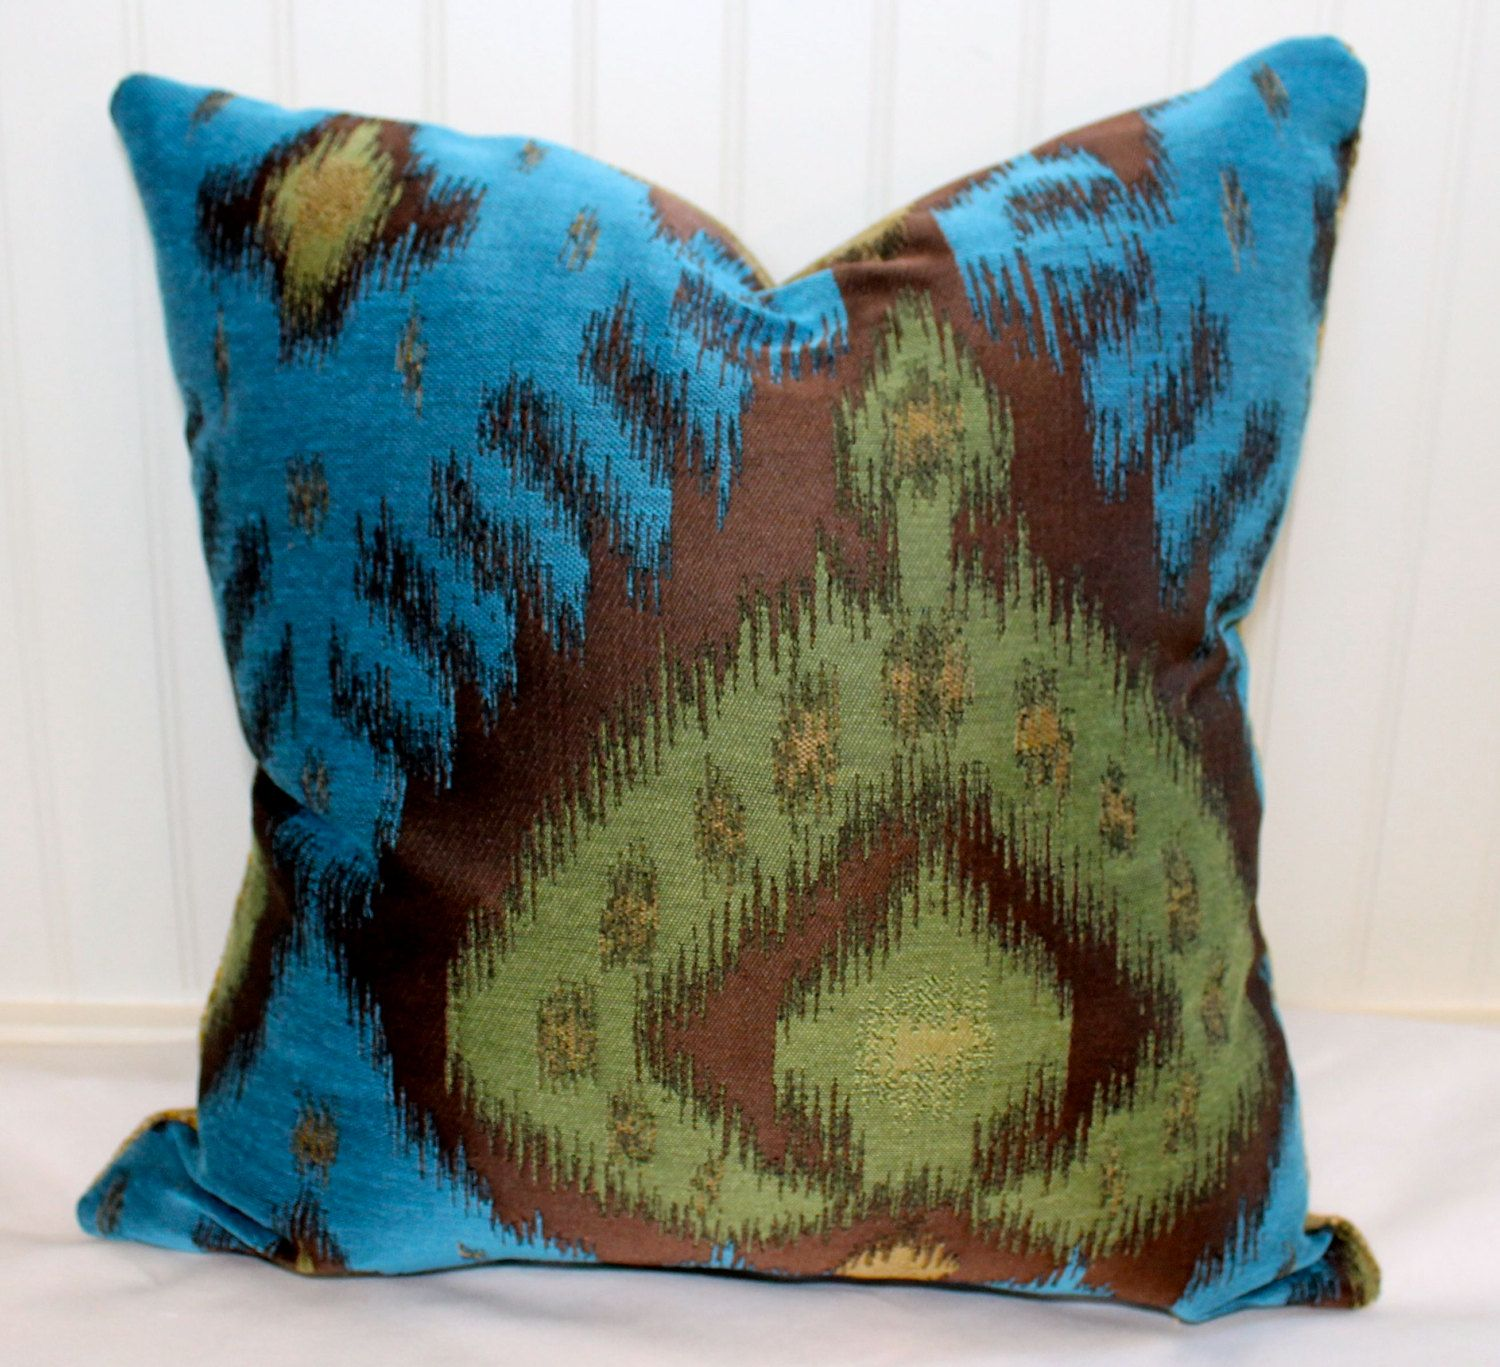 Brown and teal throw pillows - Blue Green Brown Ikat Pillow Cover 18 X 18 By Stitchandbrush